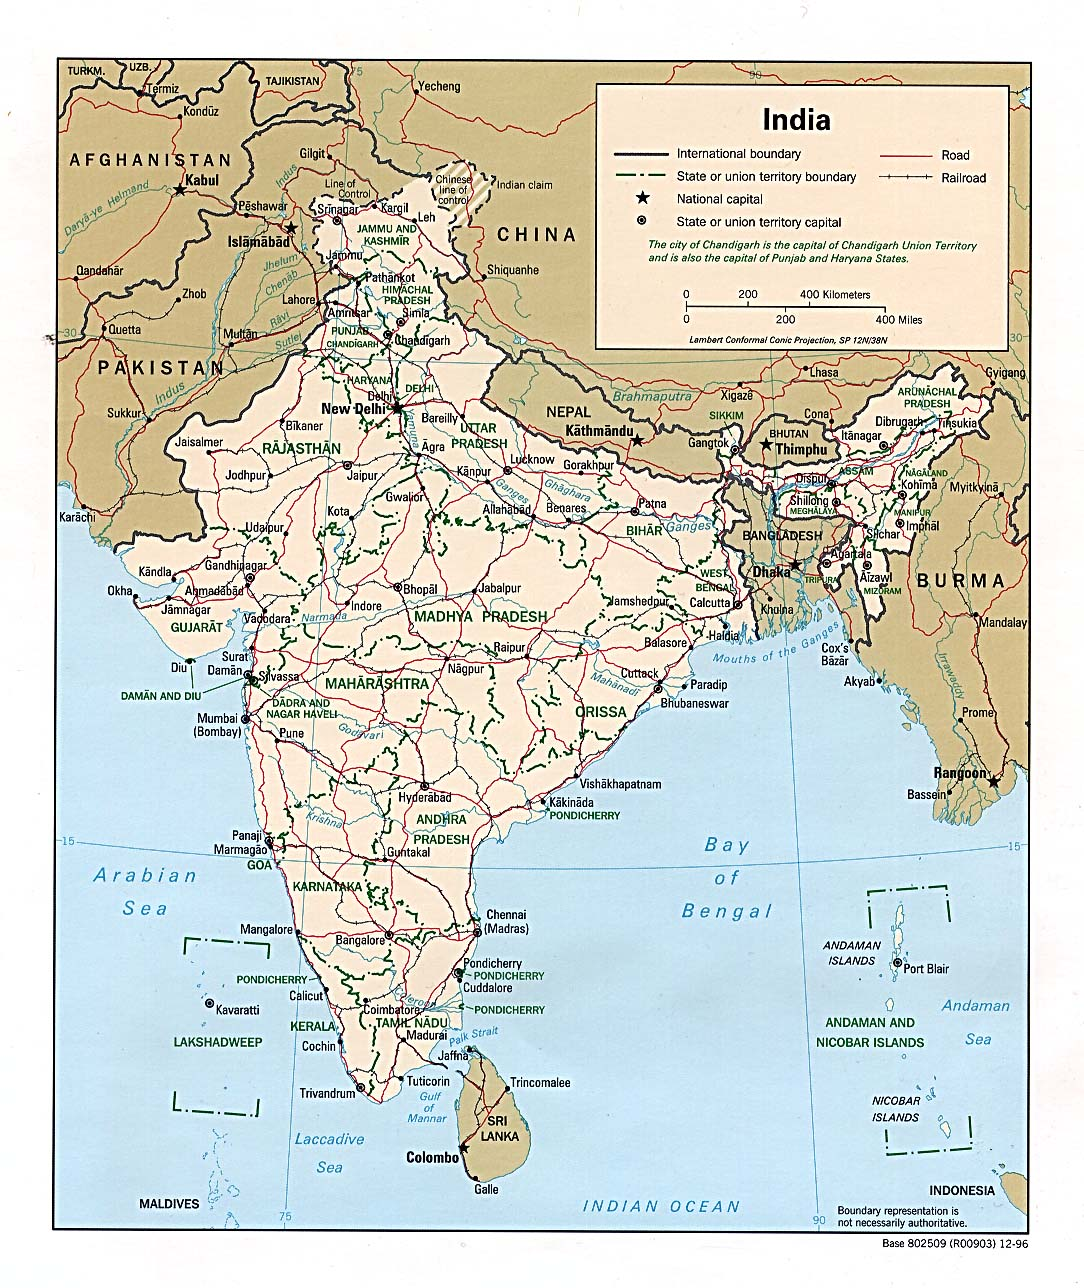 atlas book of maps pdf free download India Maps Perry Castaneda Map Collection Ut Library Online atlas book of maps pdf free download